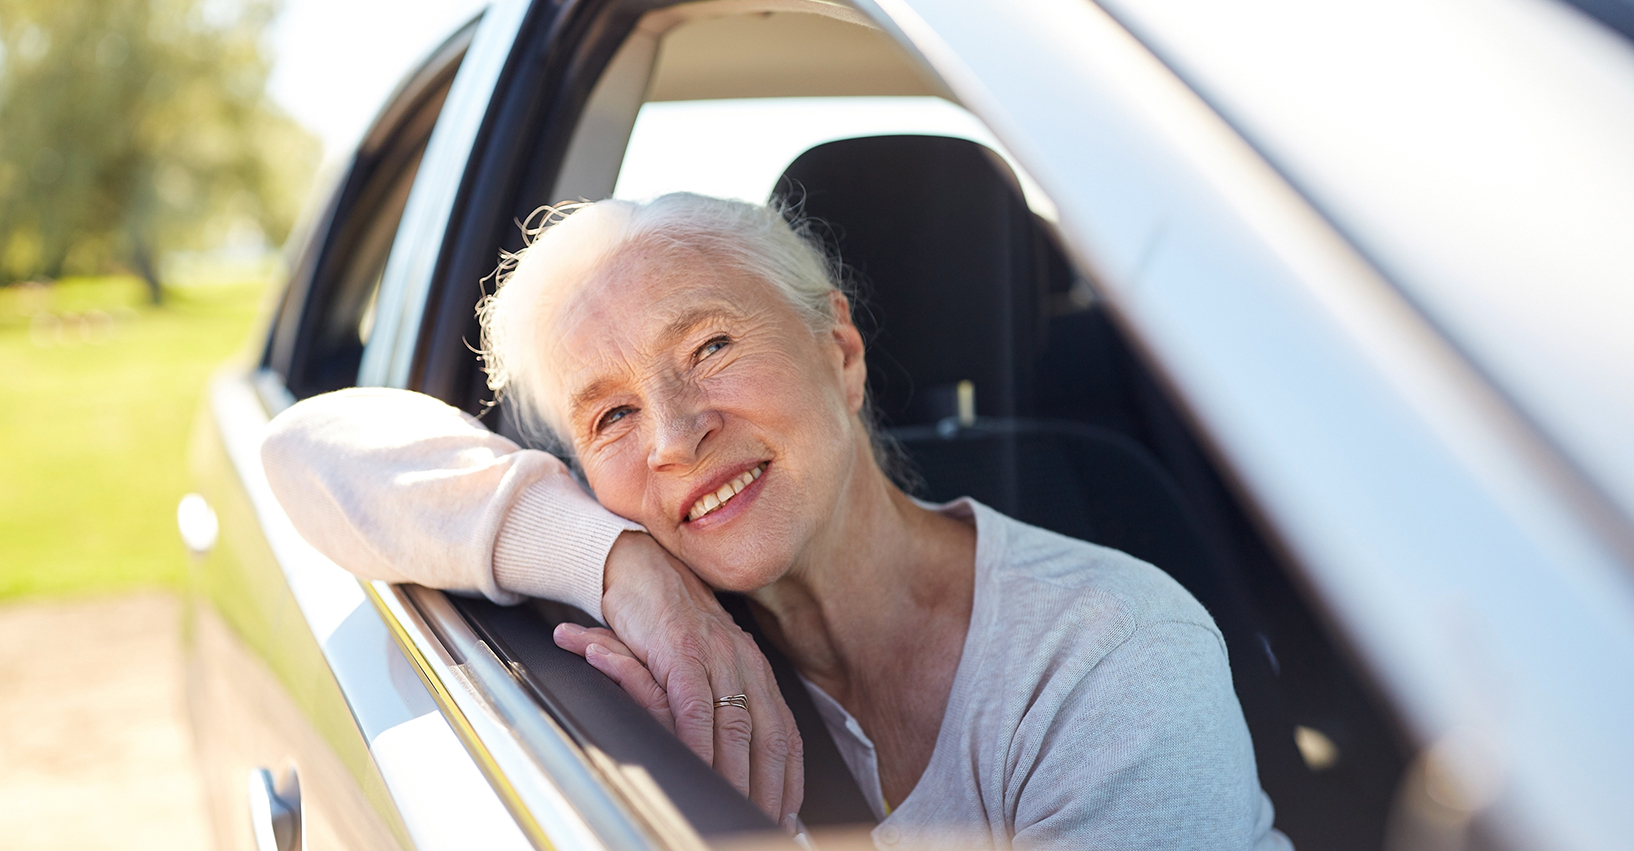 happy senior woman driving in car with open window